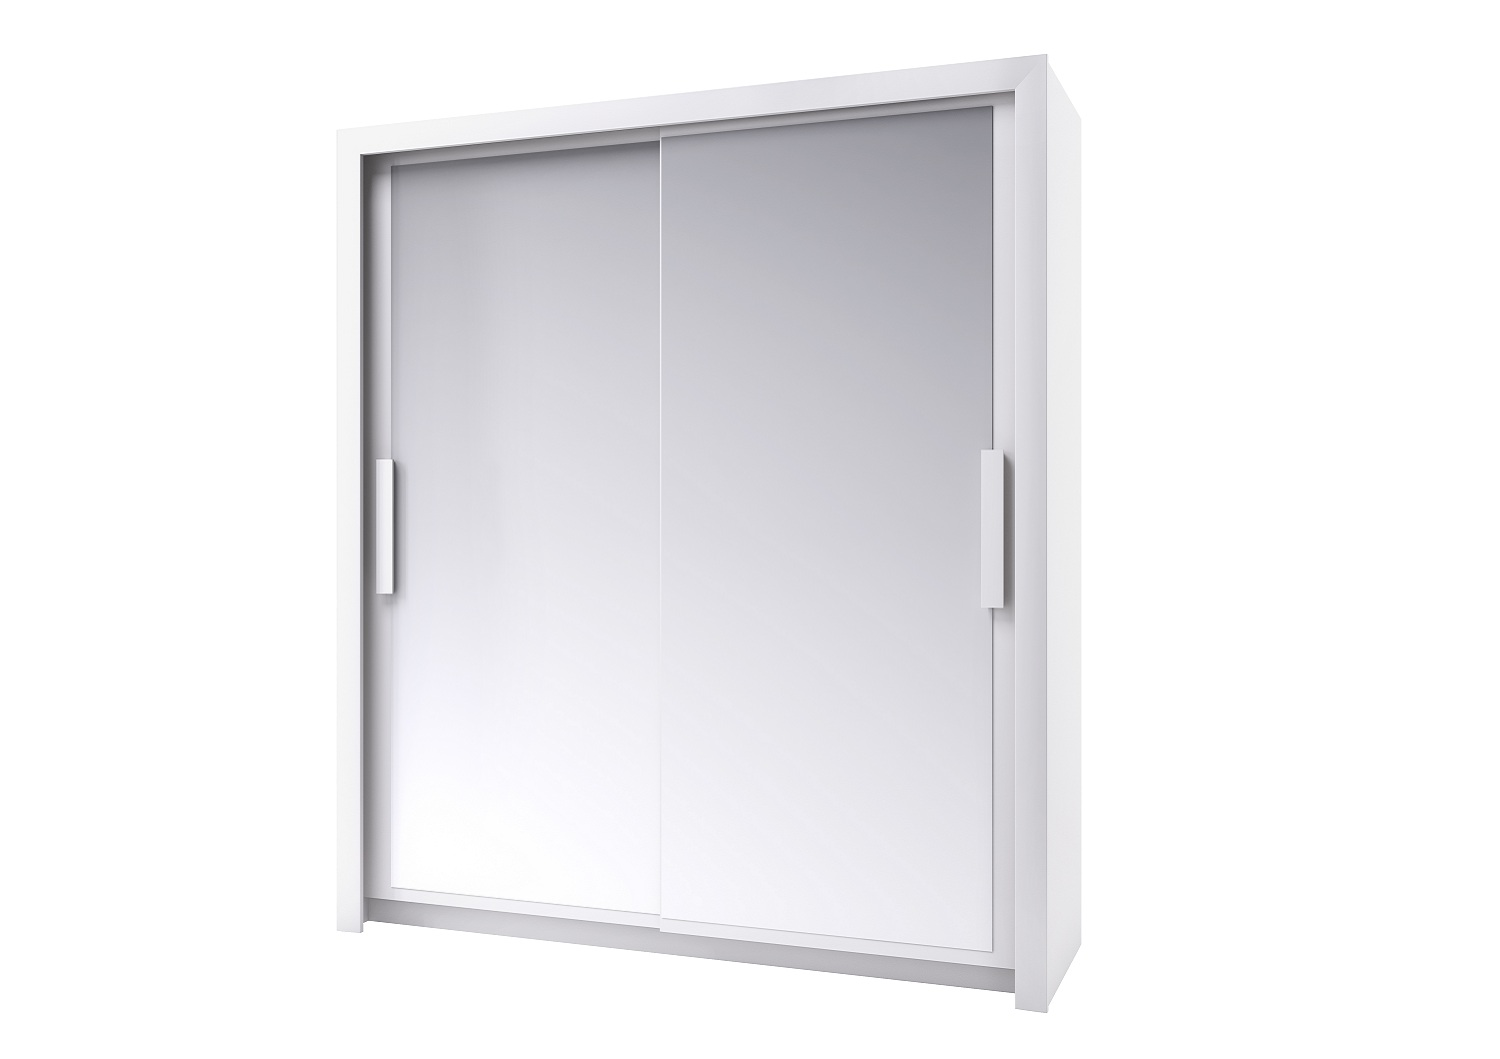 Bilrich Storage Furniture - Perfect Wardrobe 182cm White